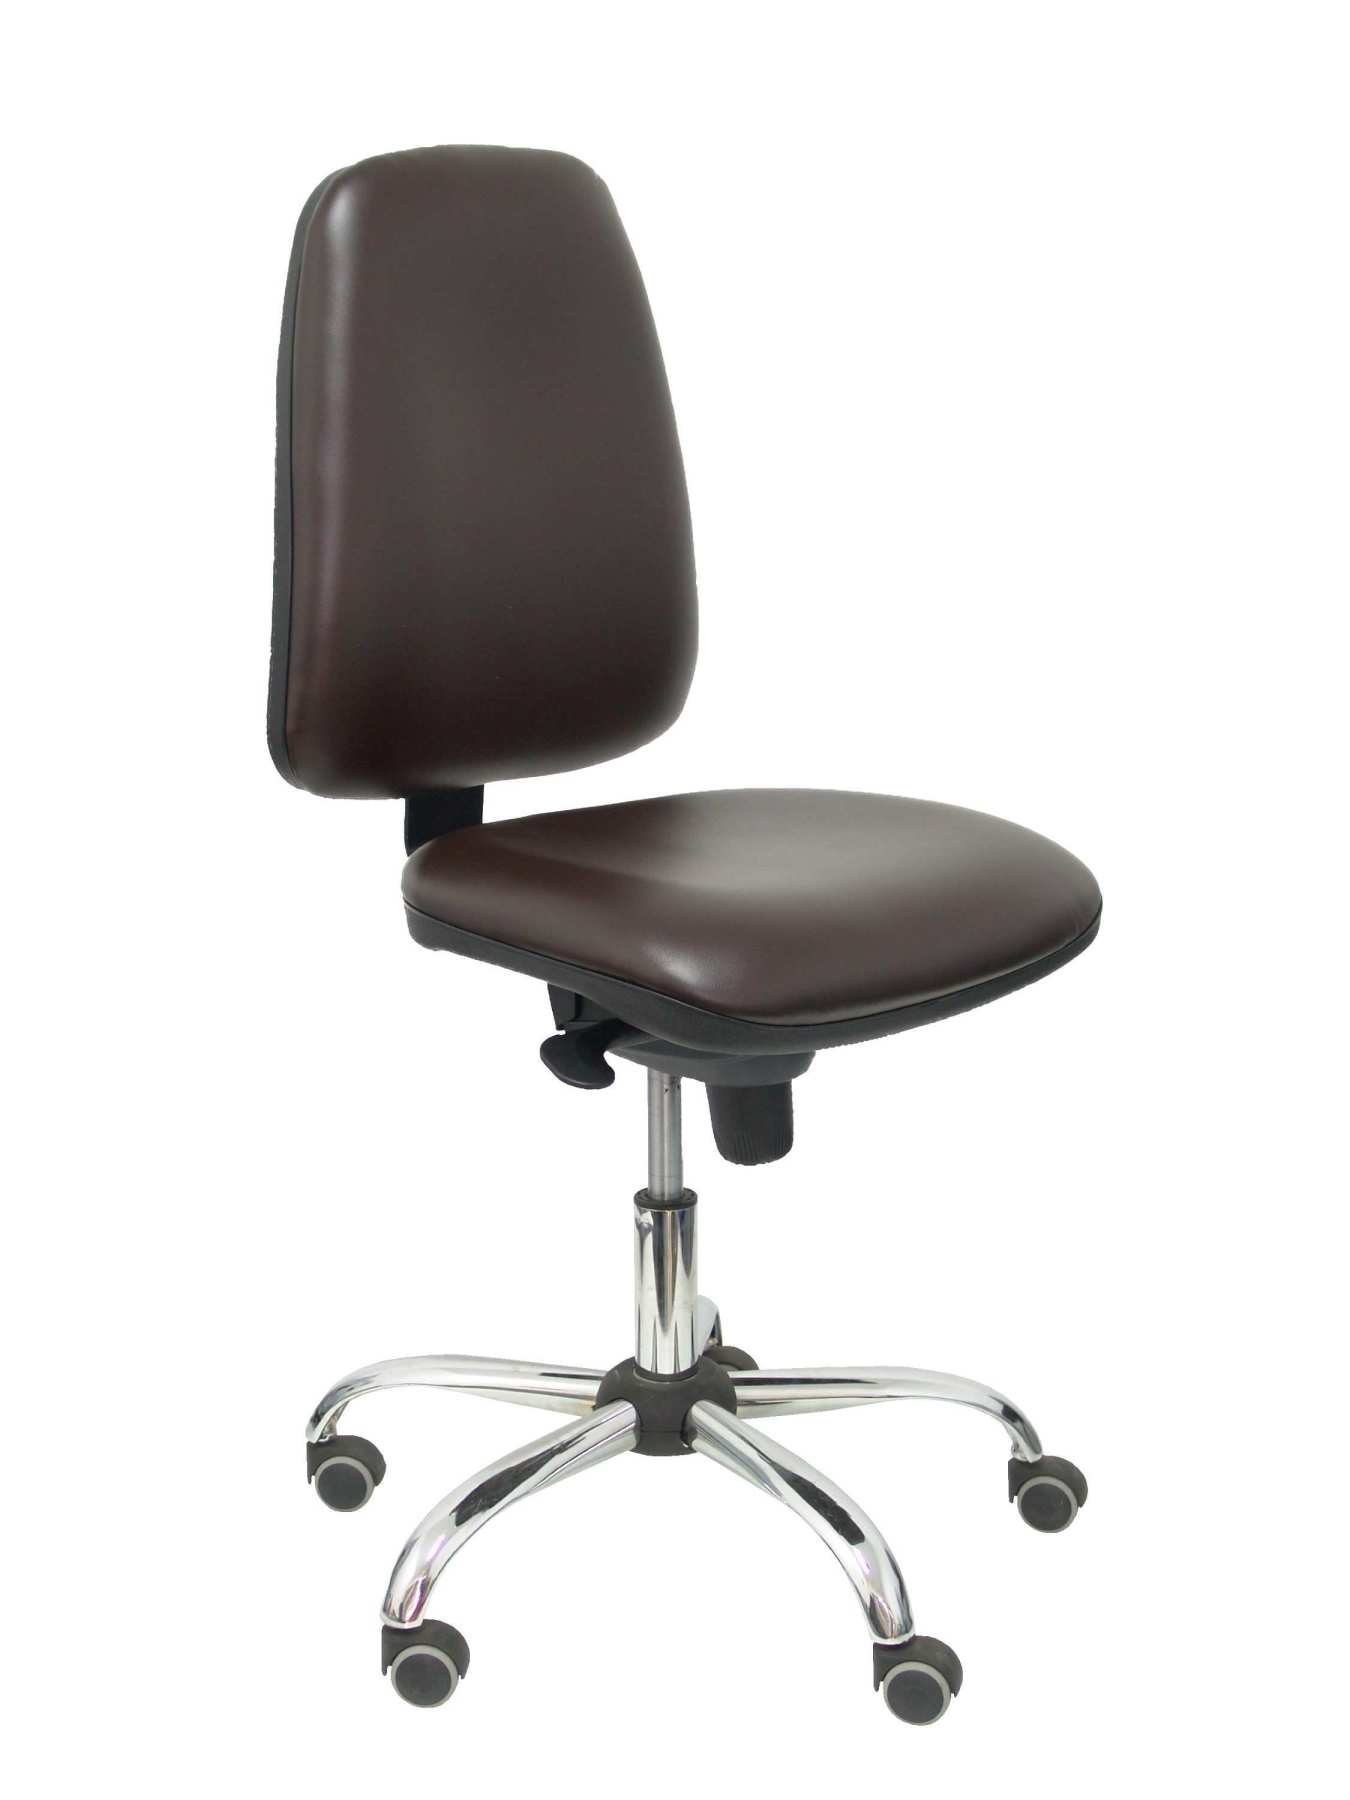 Ergonomic Office Chair With Mechanism Synchro And Height Adjustable Seat And Fabric Upholstered In Similpiel Color Ma